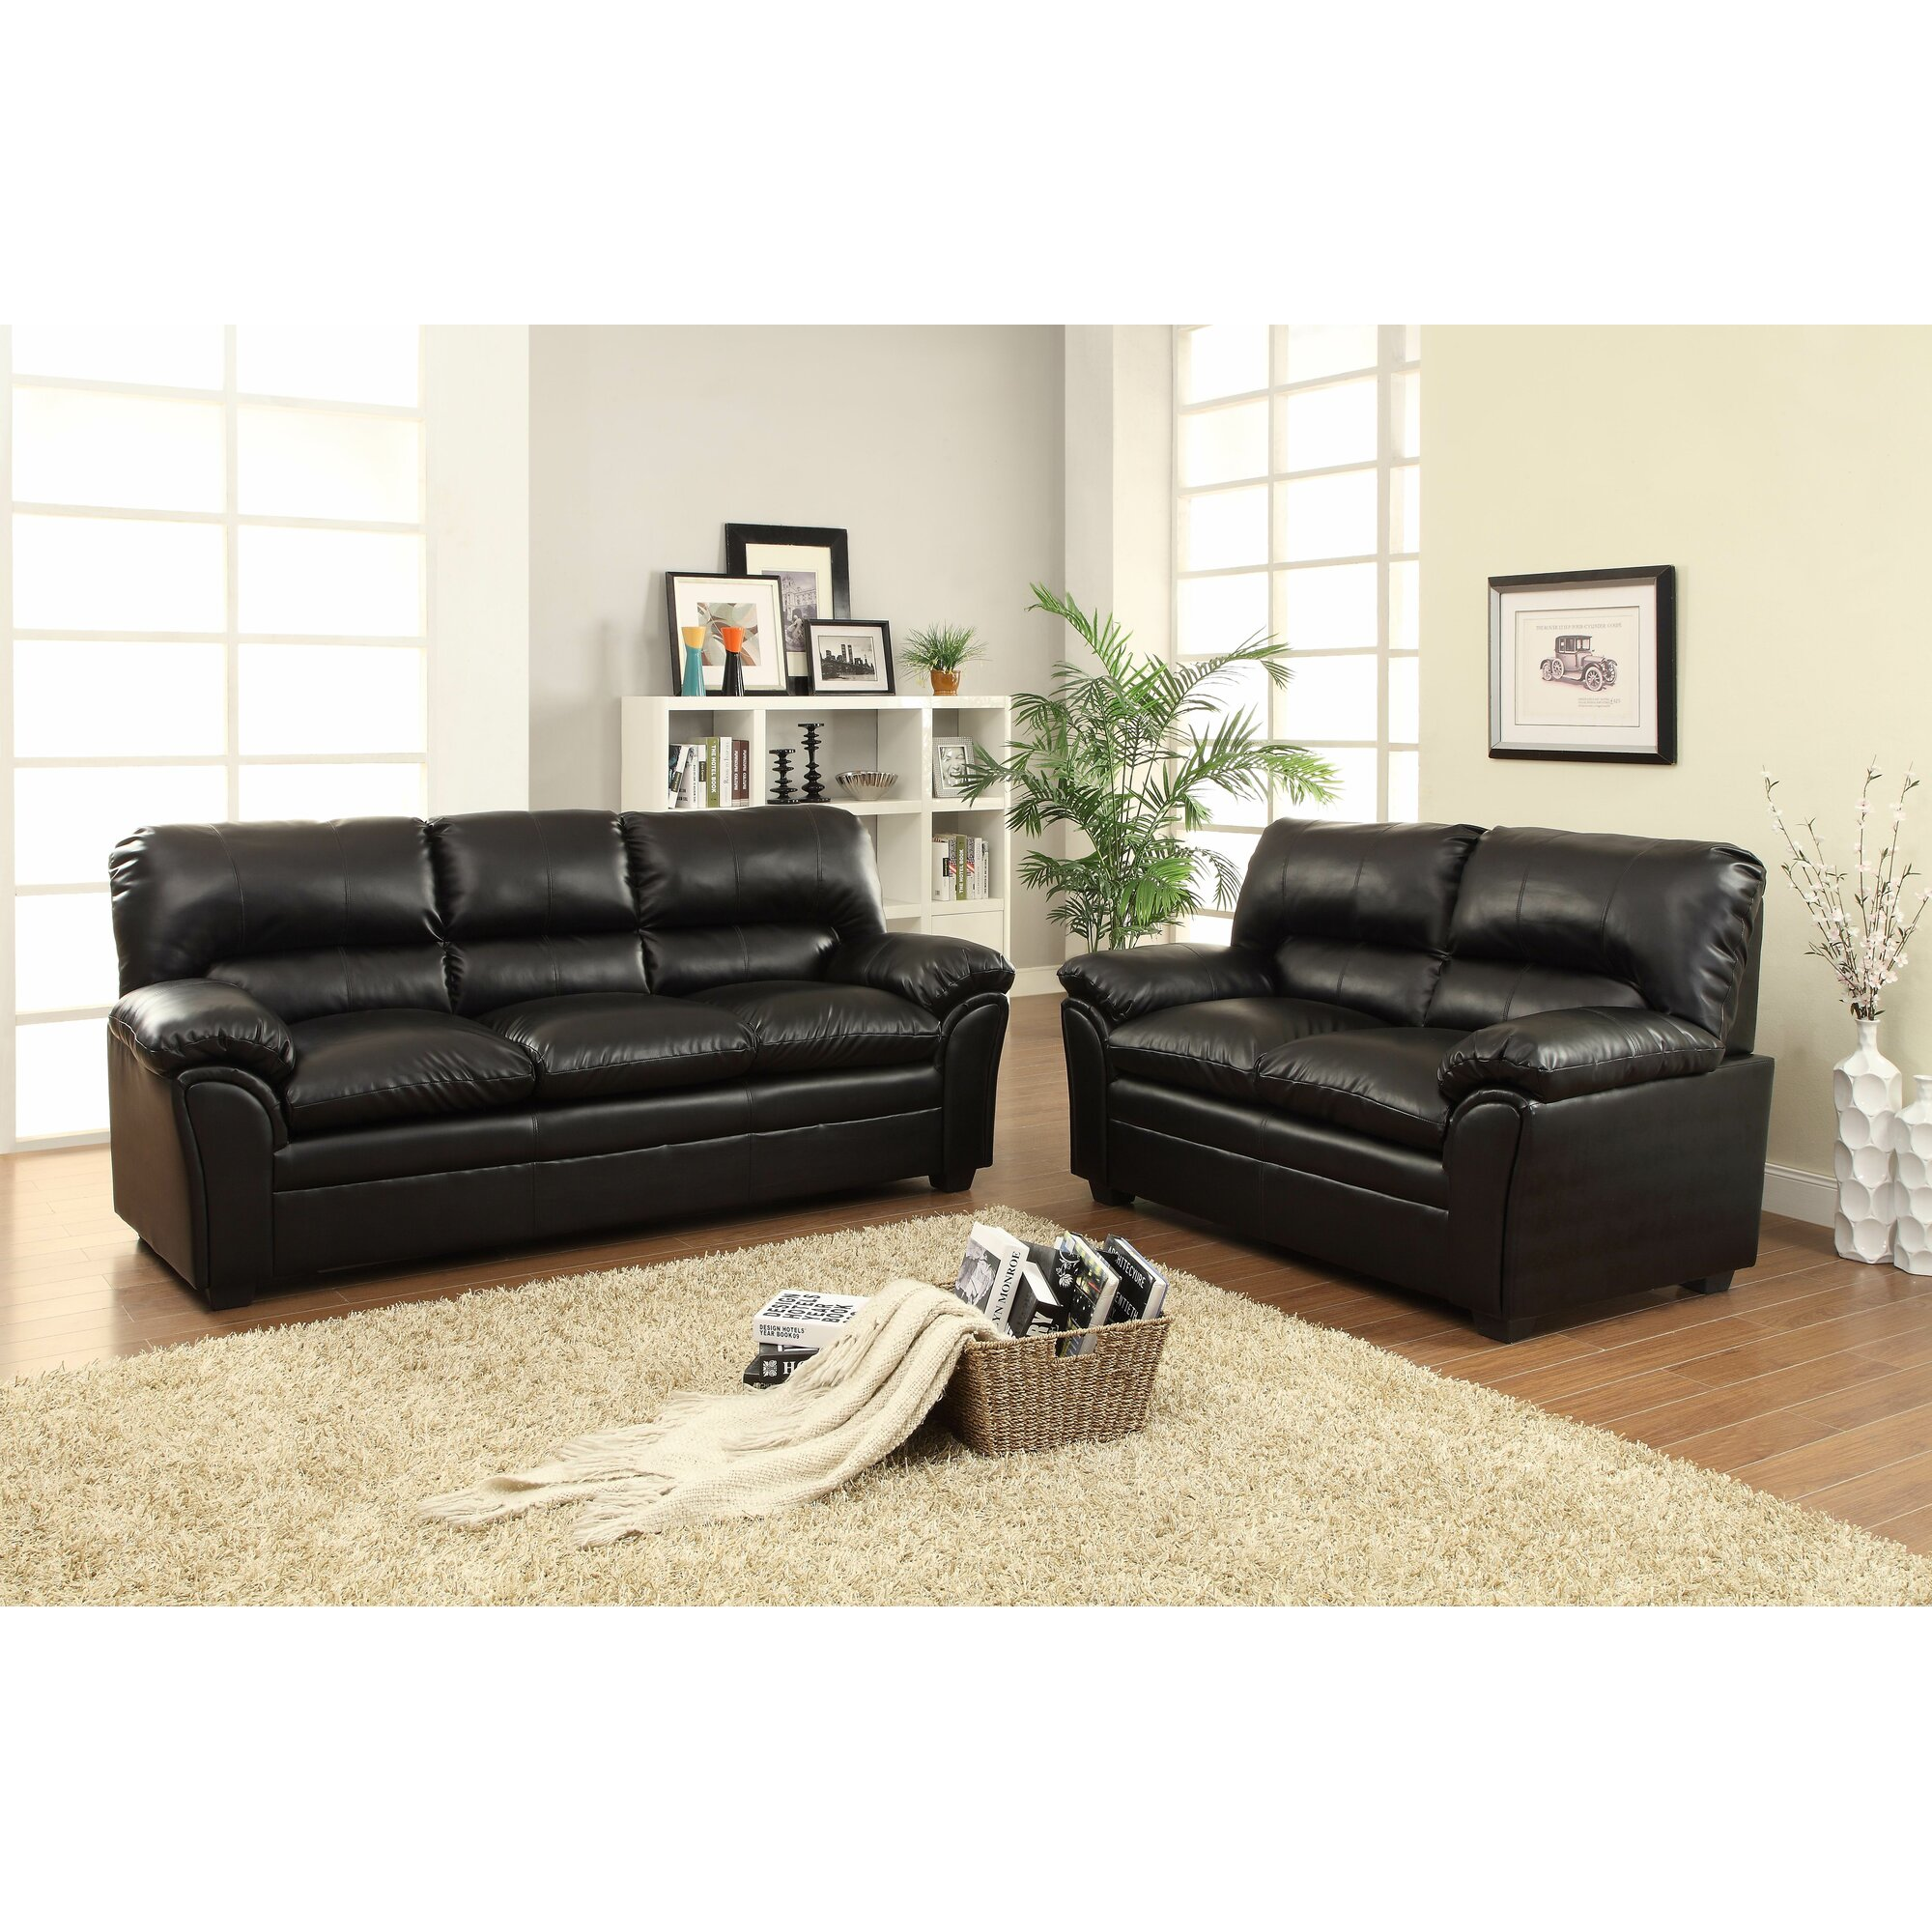 woodhaven living room furniture. Woodhaven Hill Talon Living Room Collection Reviews Wayfair  Furniture safemarket us